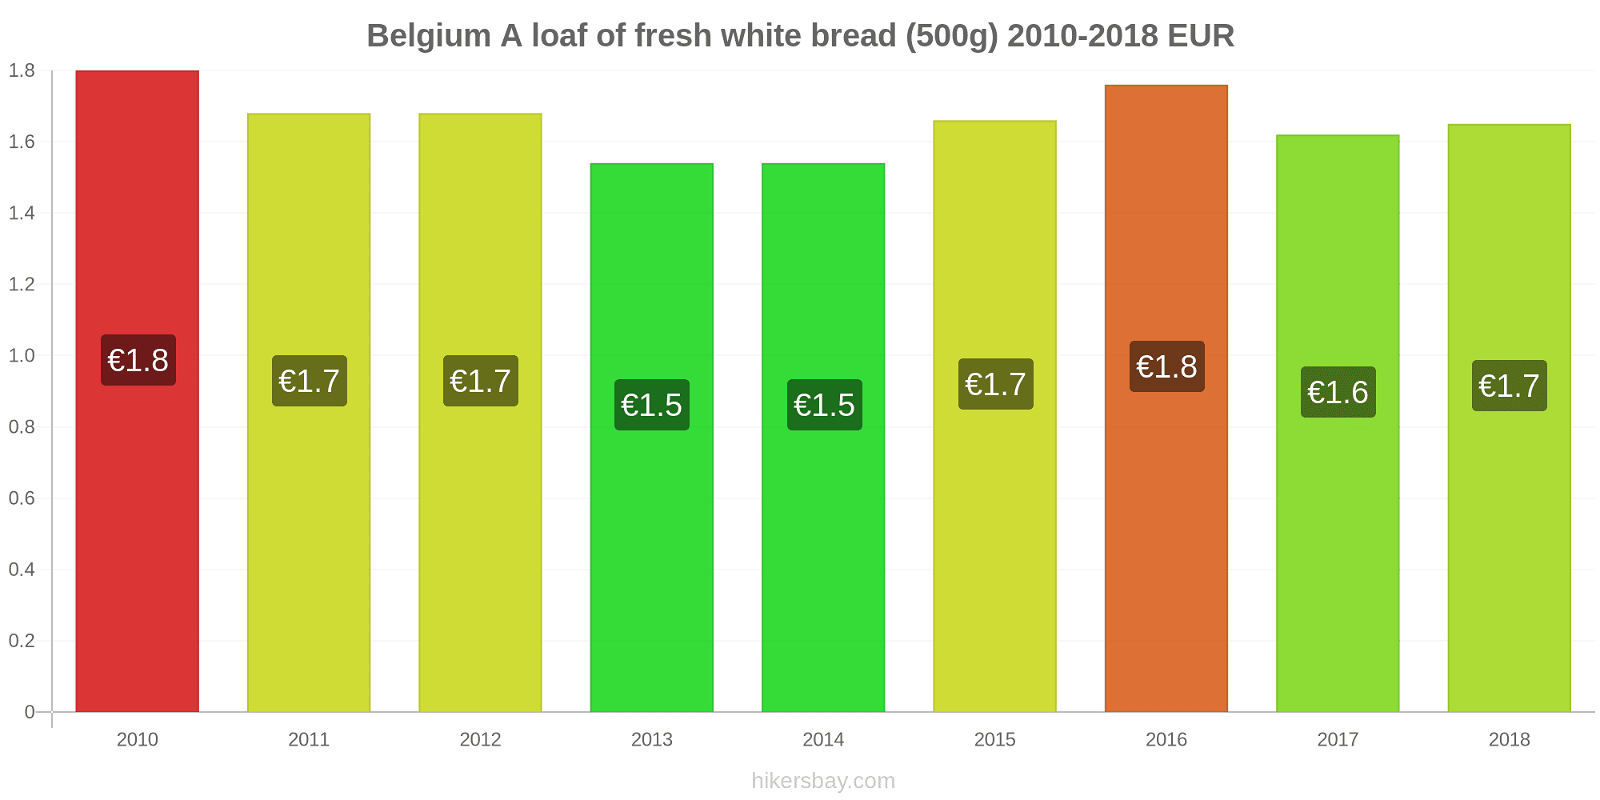 Belgium price changes A loaf of fresh white bread (500g) hikersbay.com